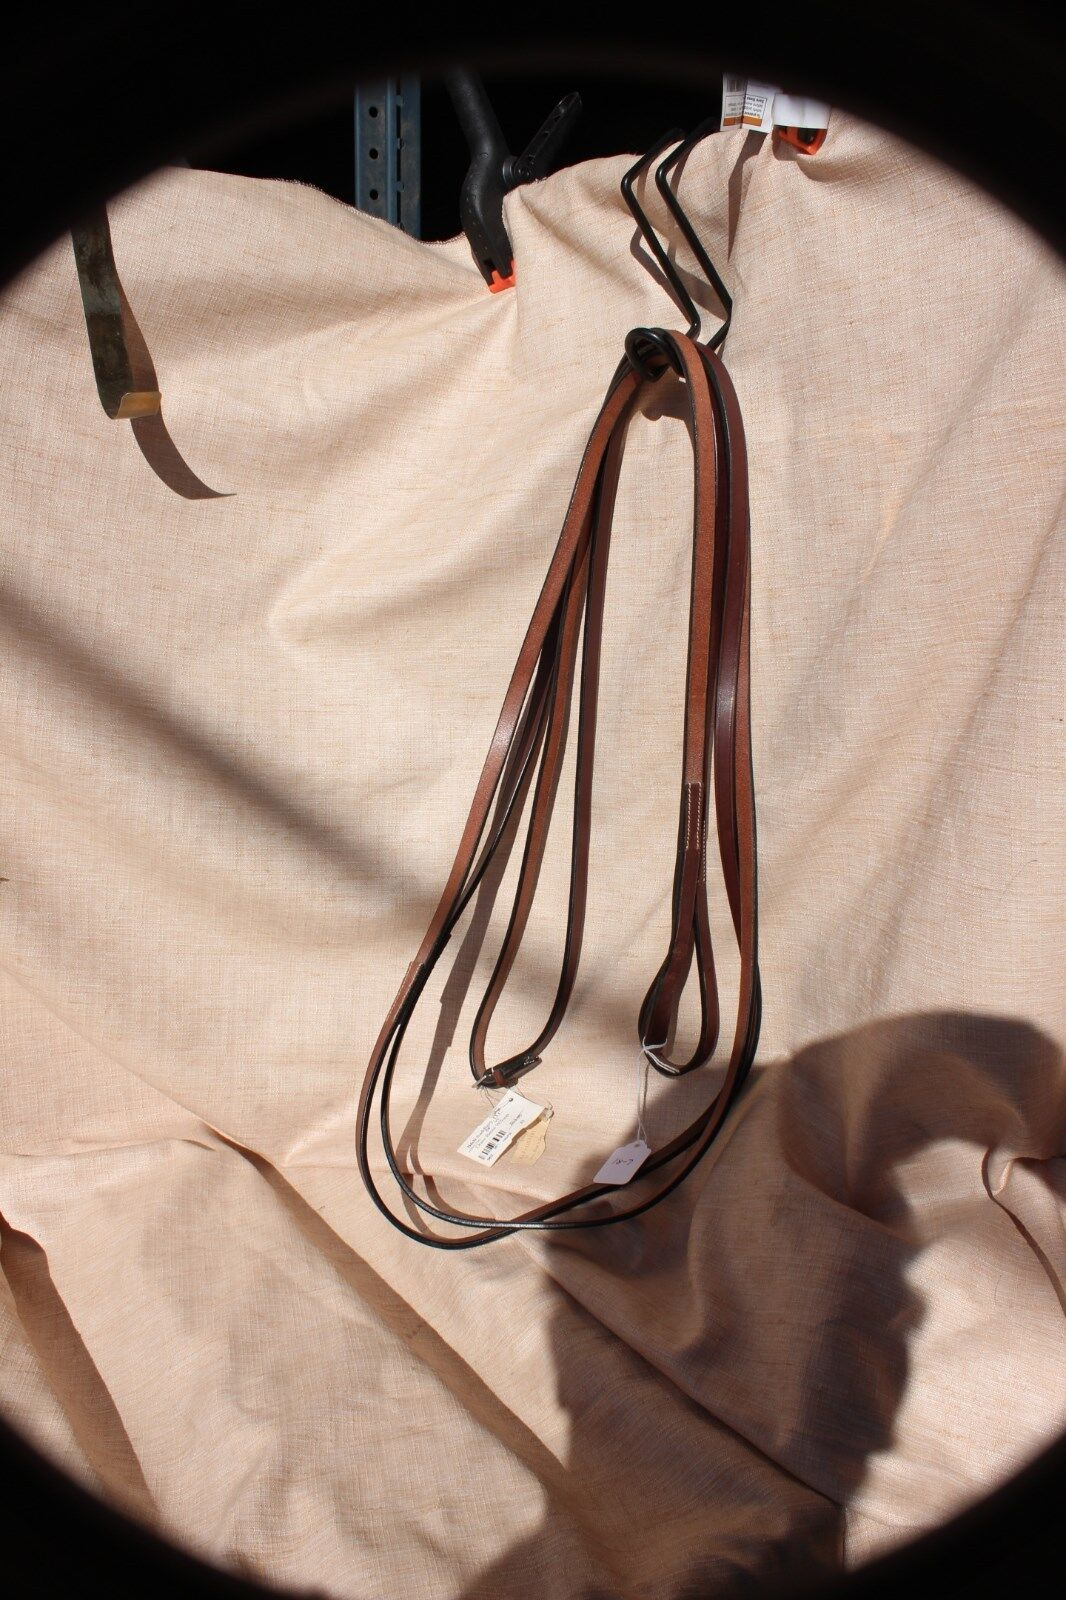 18-7 New from B&B Saddlery draw reins with loop 84  by 1 2  was 163.95